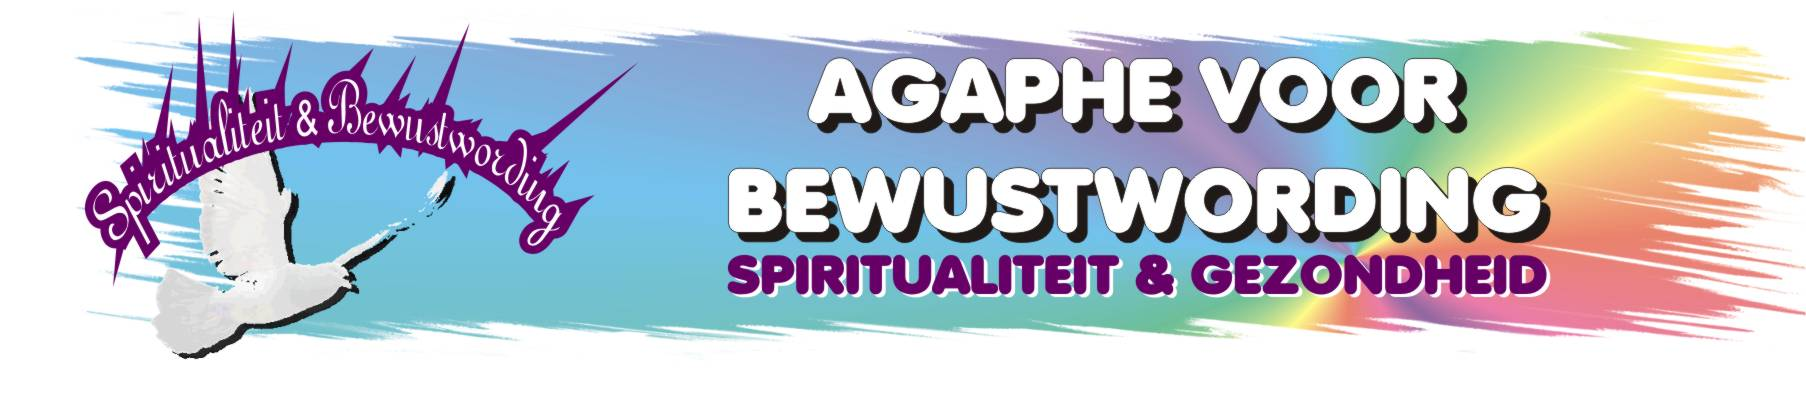 Sichting AGAPHE